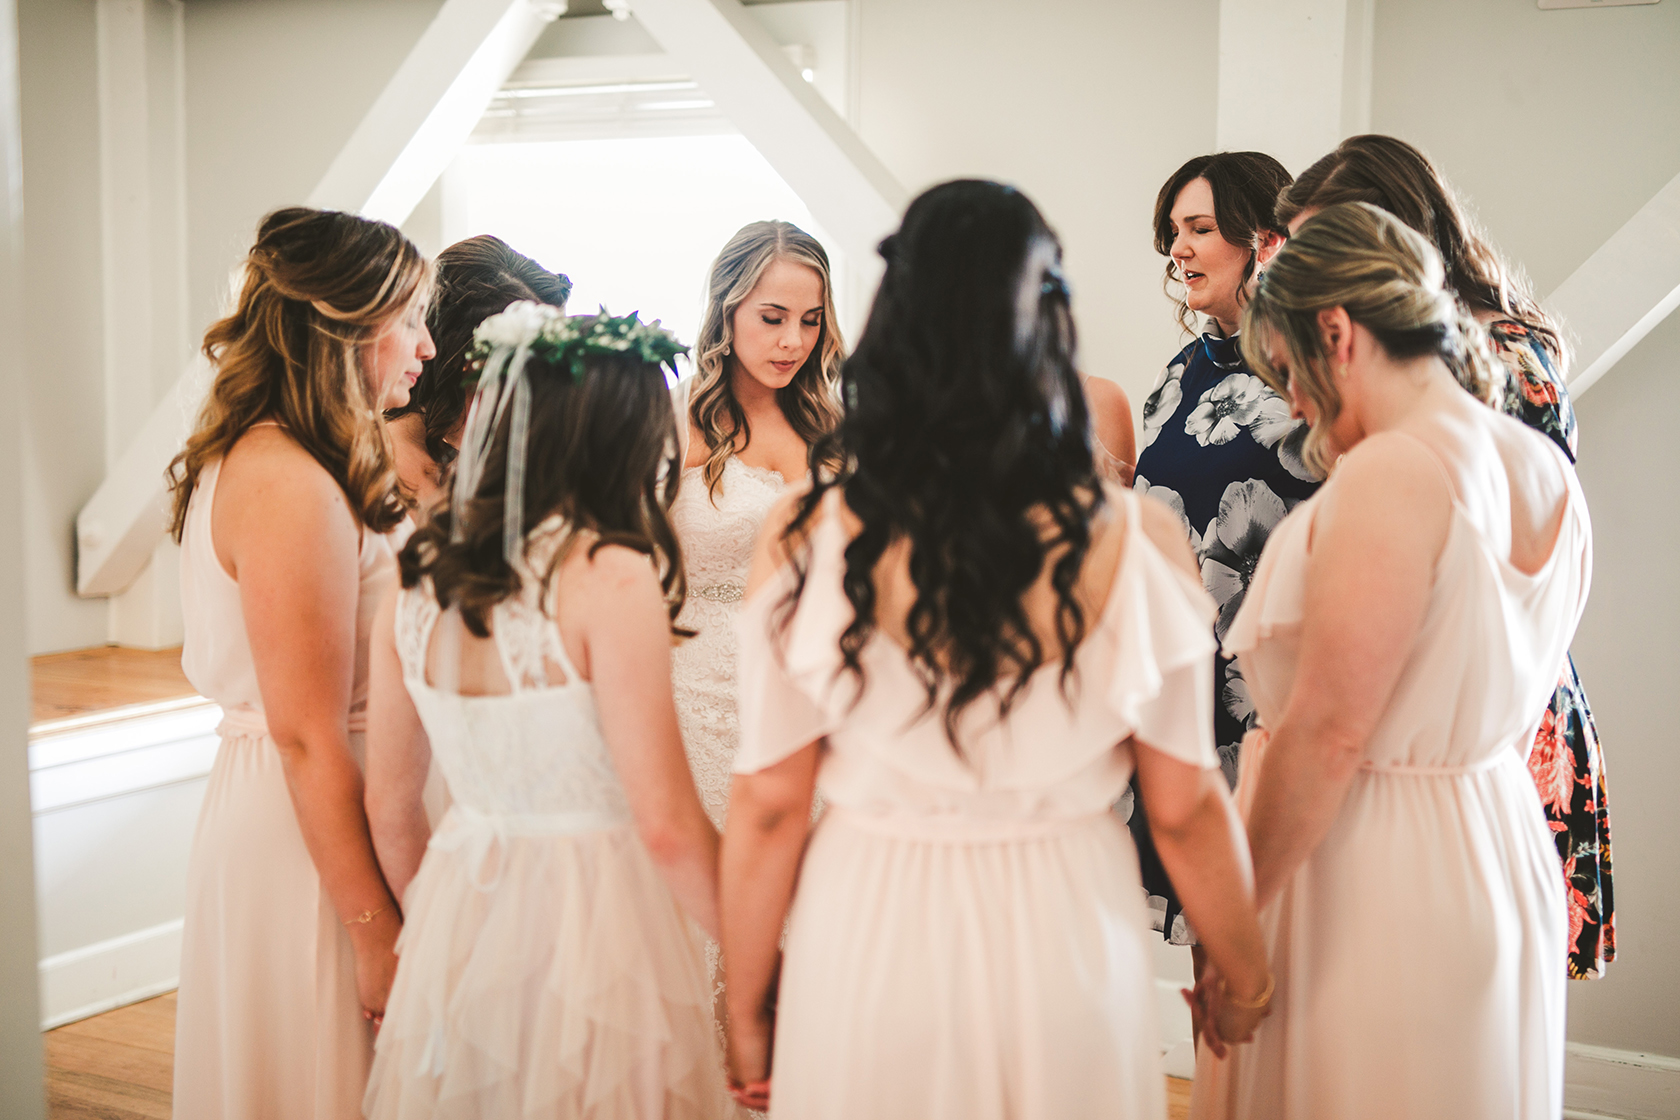 The bridesmaids praying with the bride before the wedding ceremony